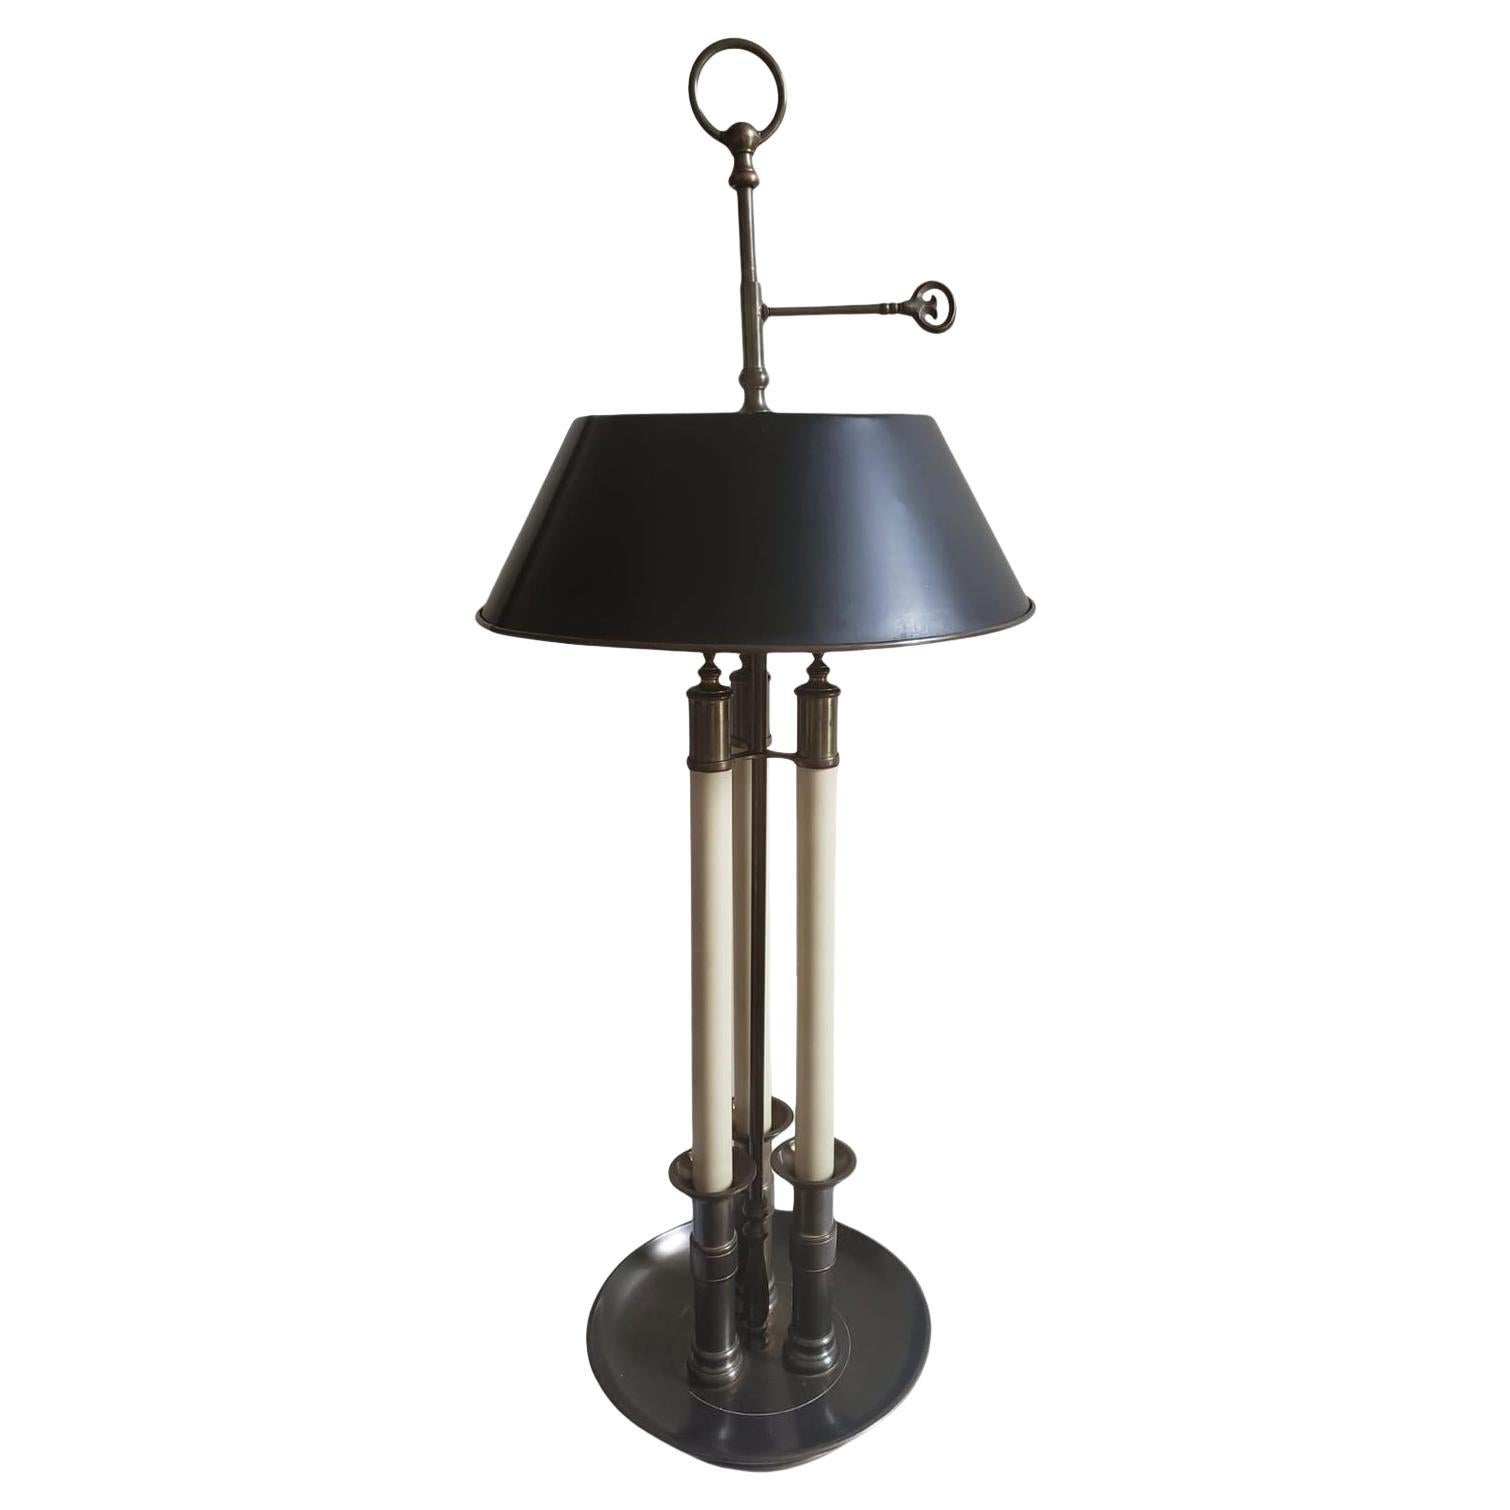 1972 Chapman Solid Brass Bouillotte Lamp with Tole Shade